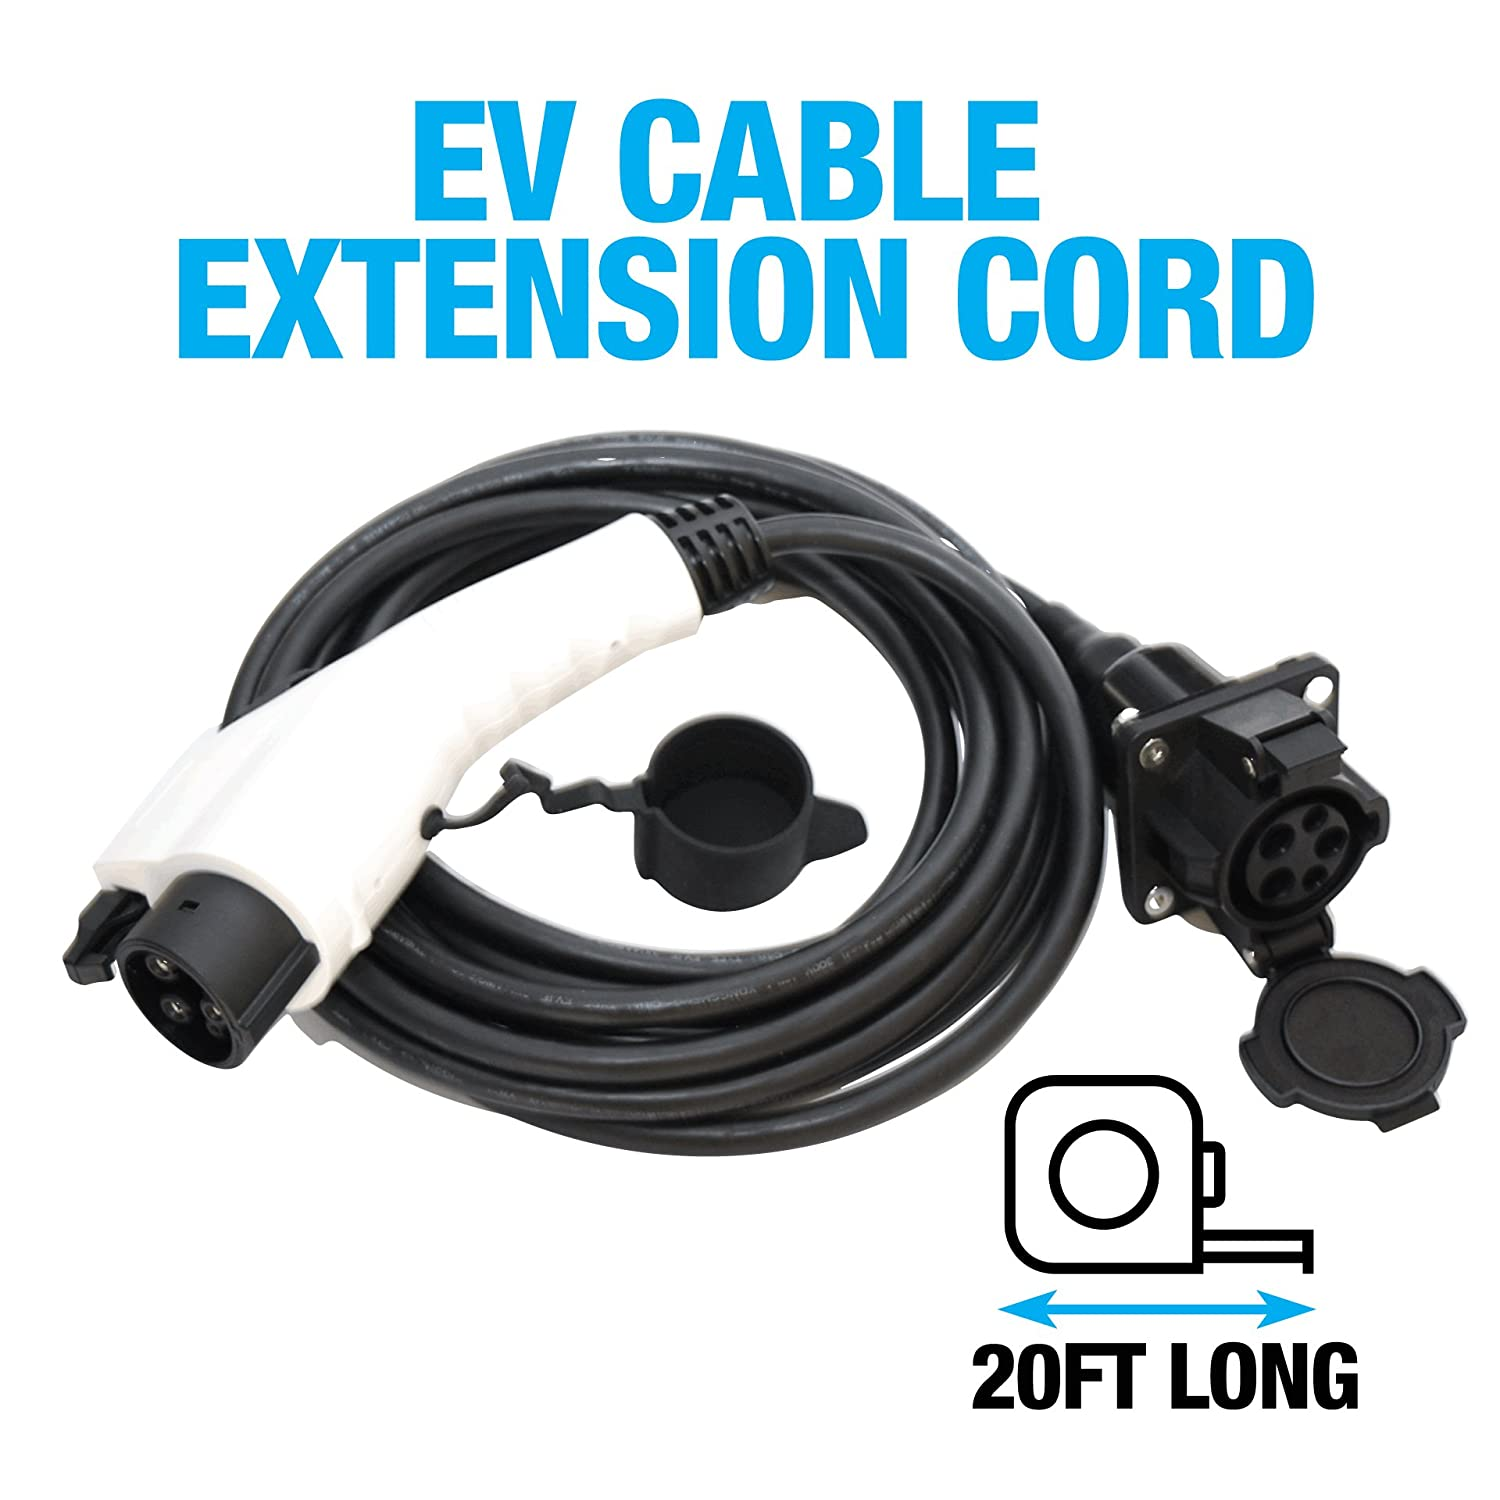 20 Ft Ev Charging Extension Cable By Gear Electric Range Extending Adding A 2nd Hv Battery Vehicle Cord Compatible With Any J1772 2009 Upgrades The